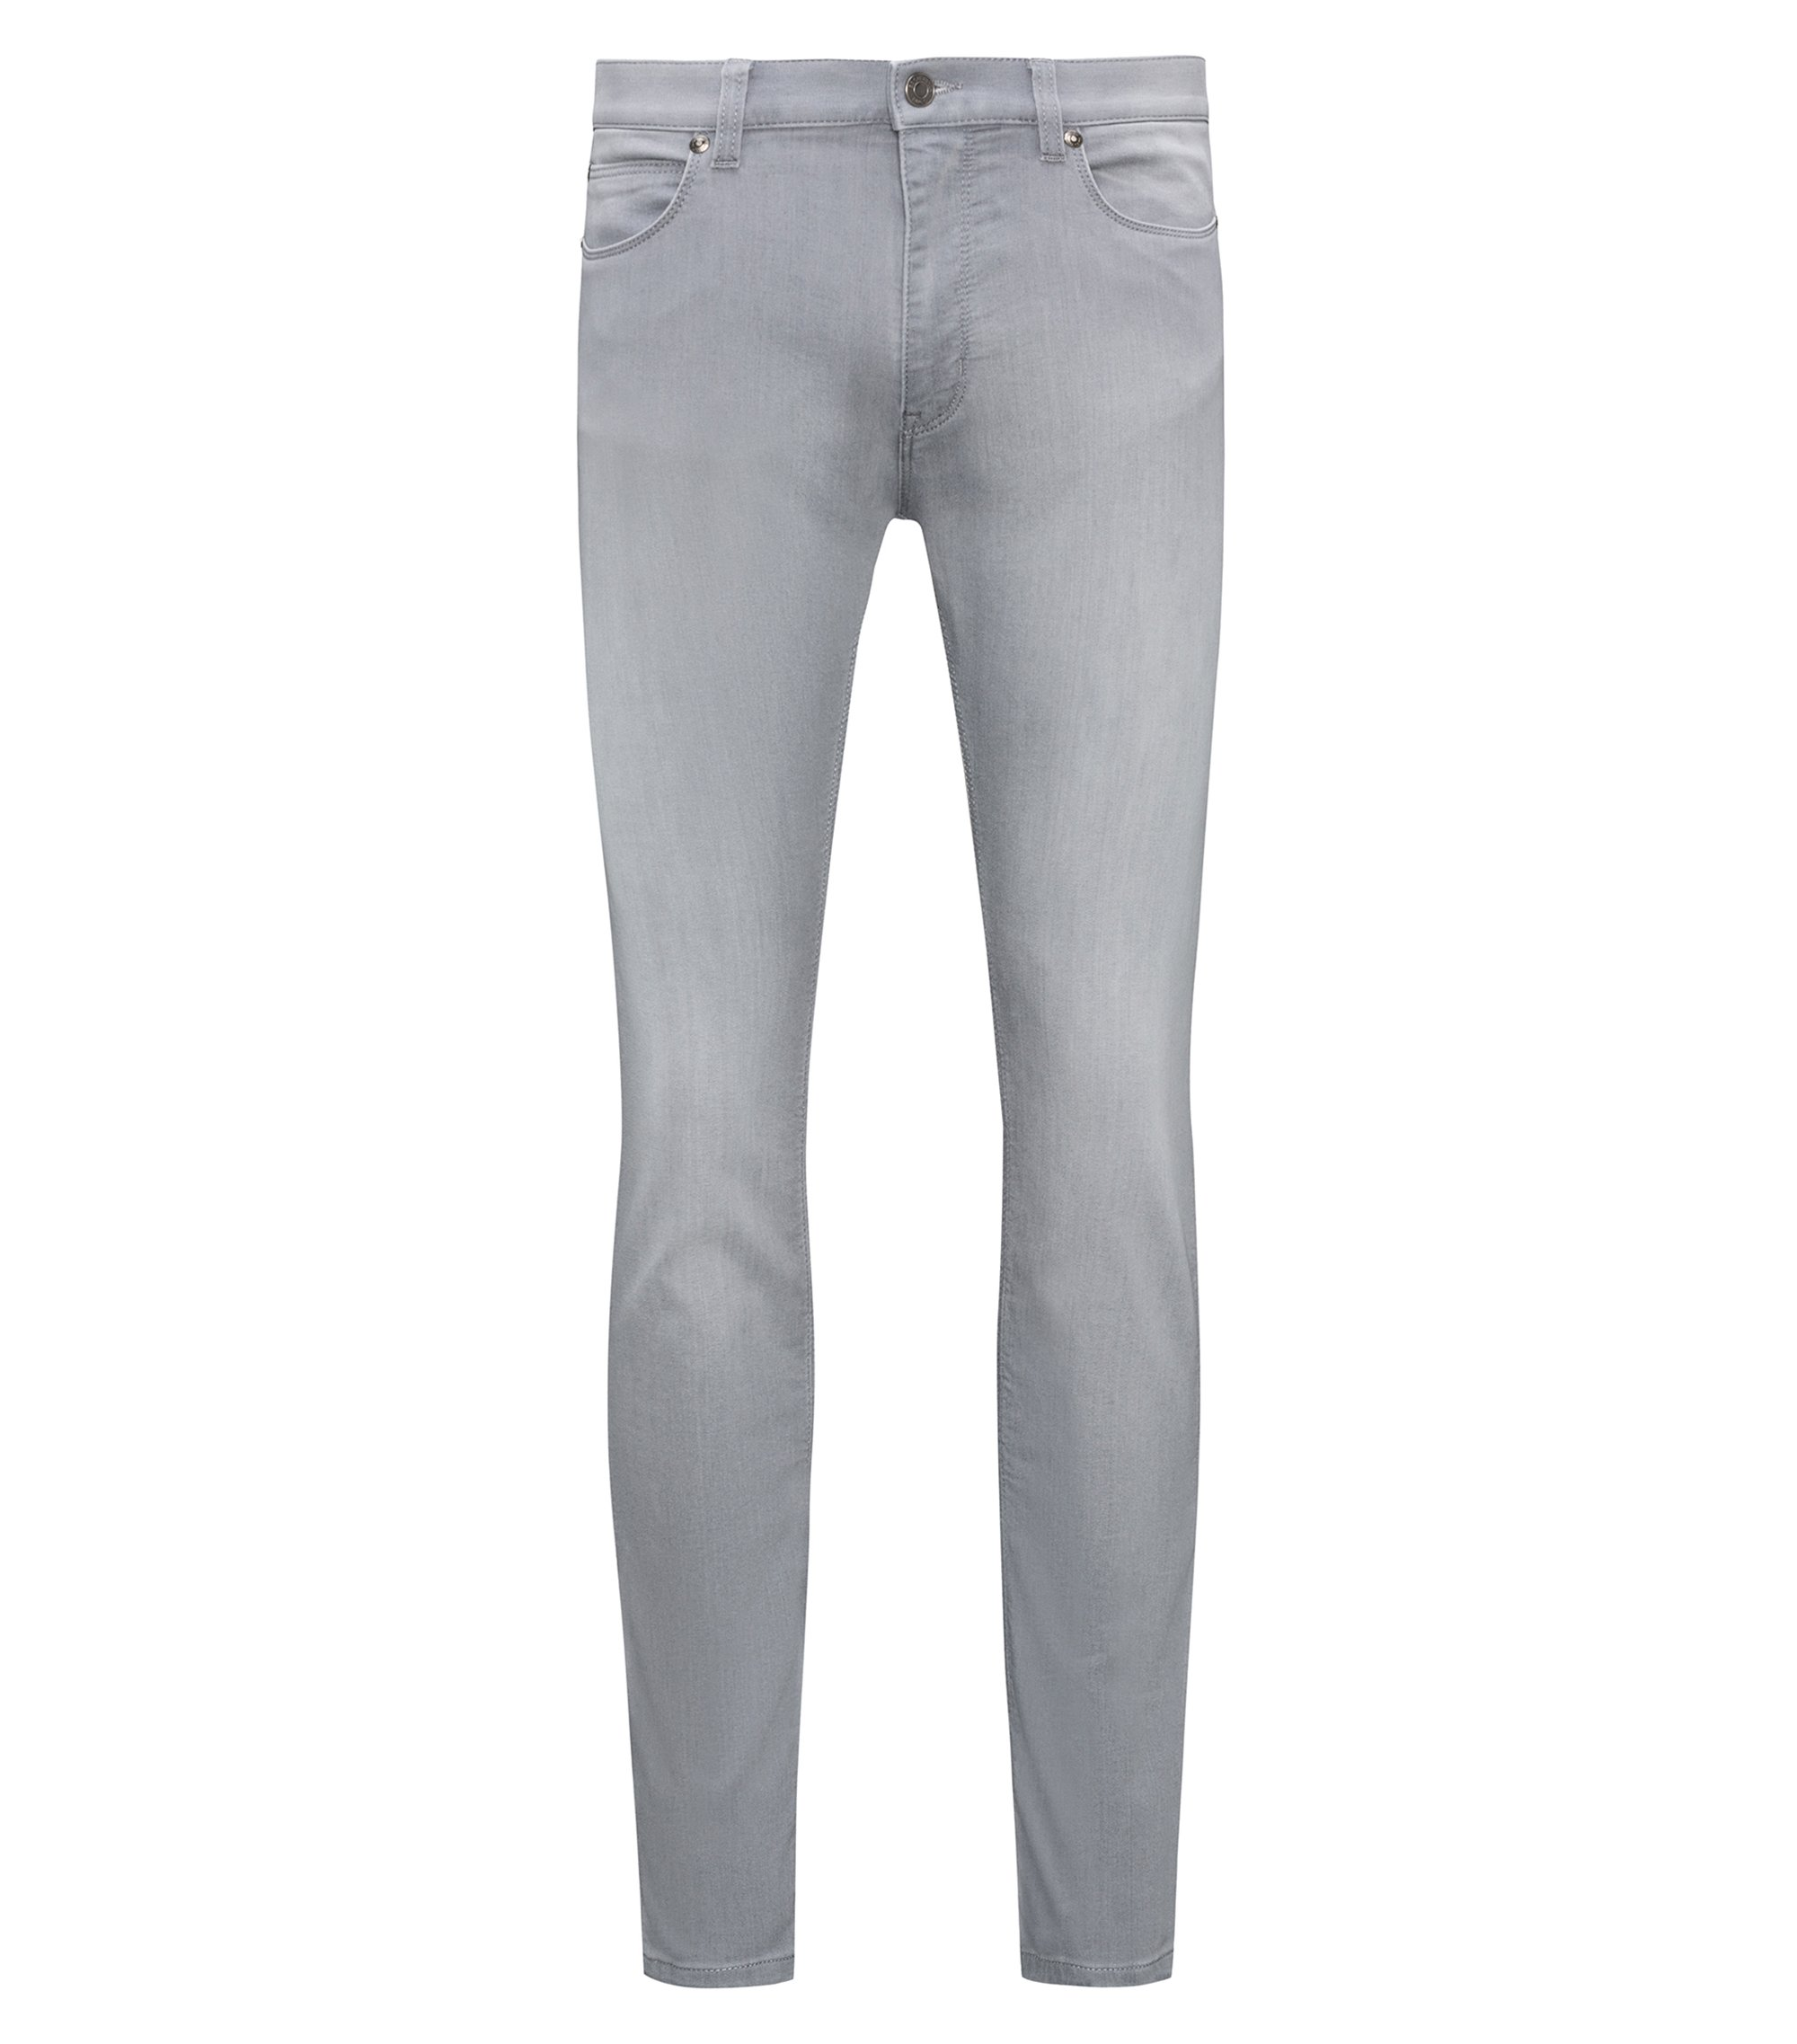 Skinny-fit stretch jeans with a low rise, Silver